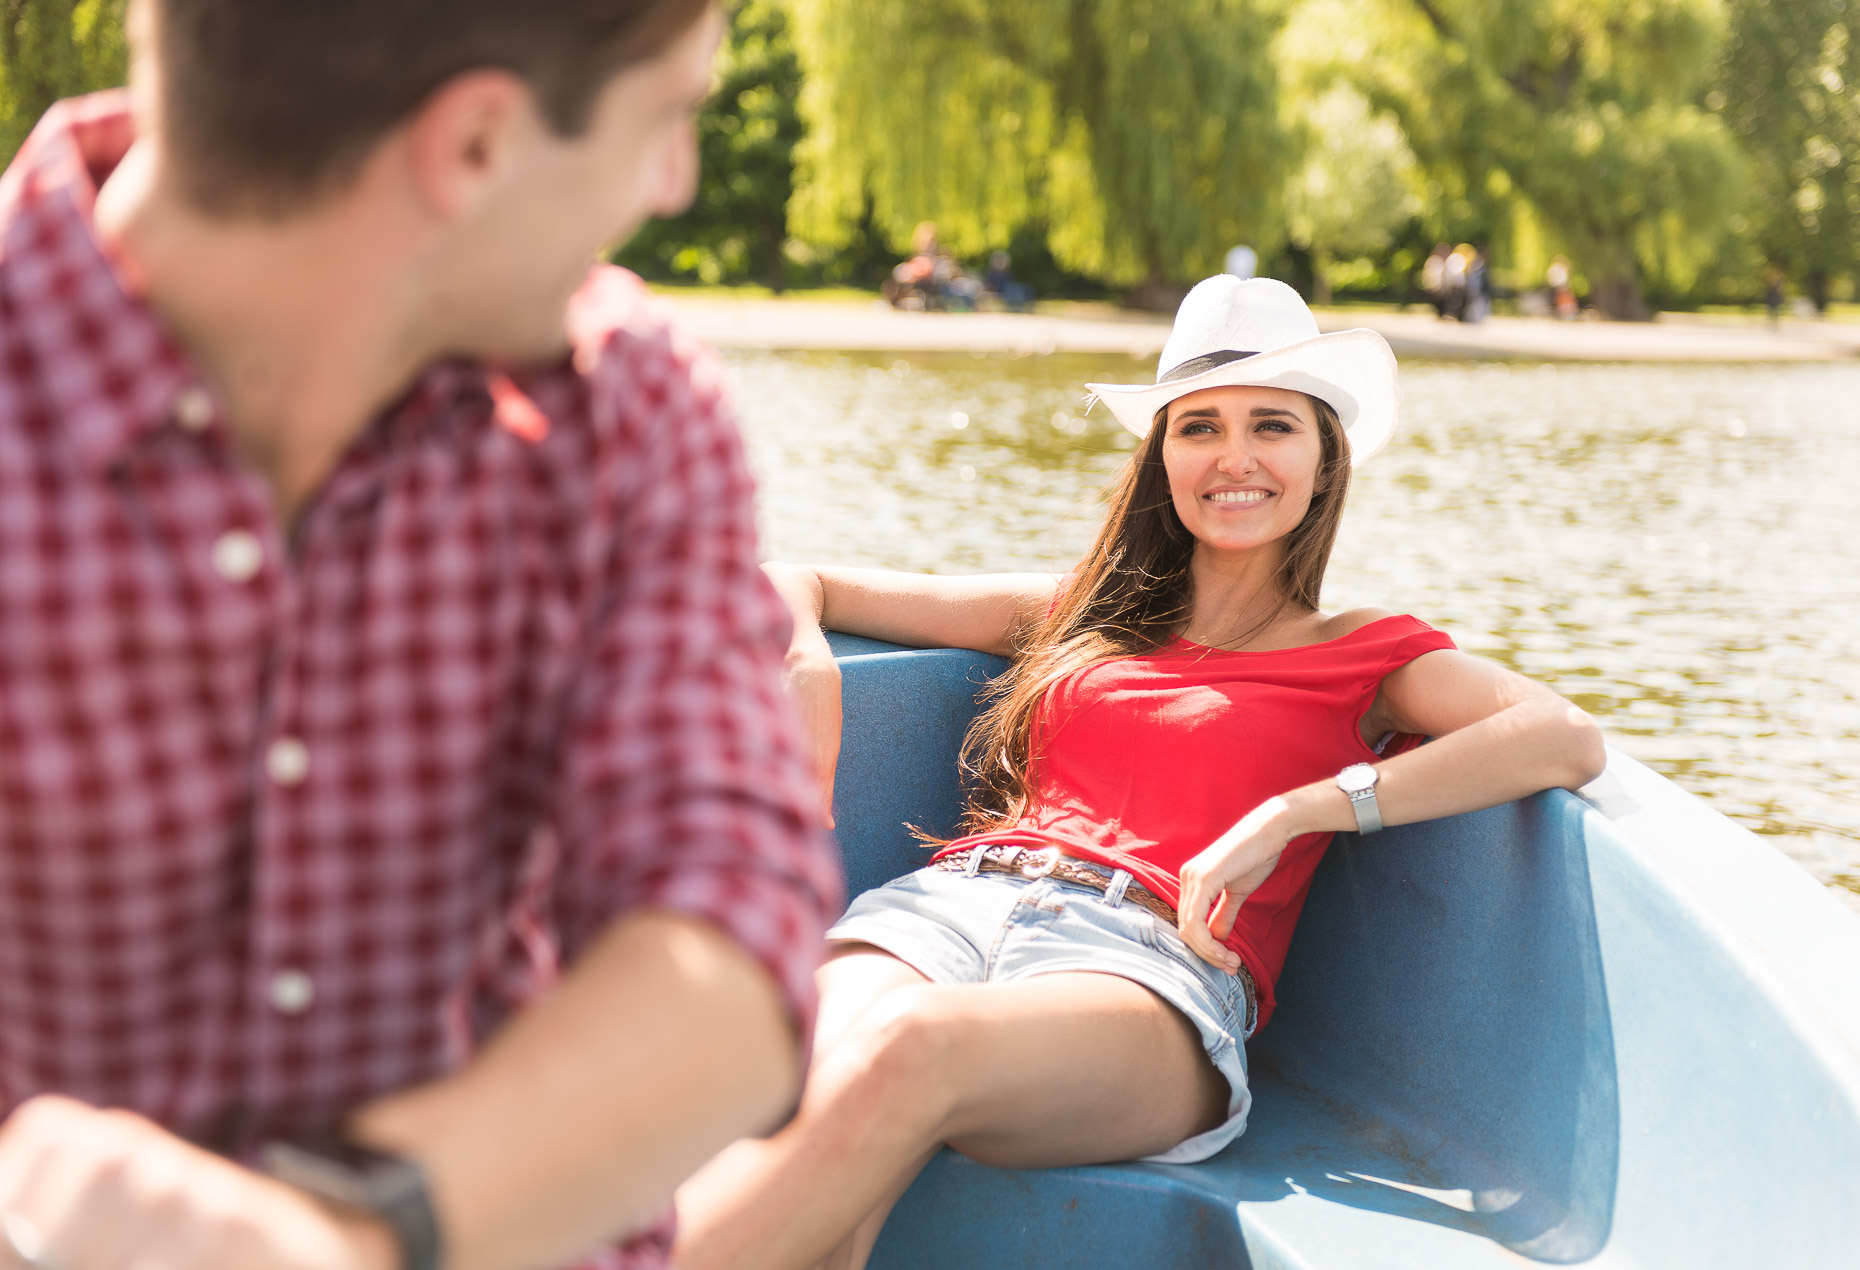 couple-boat-lake-fun-summer-lifestyle-regents-park-london-24